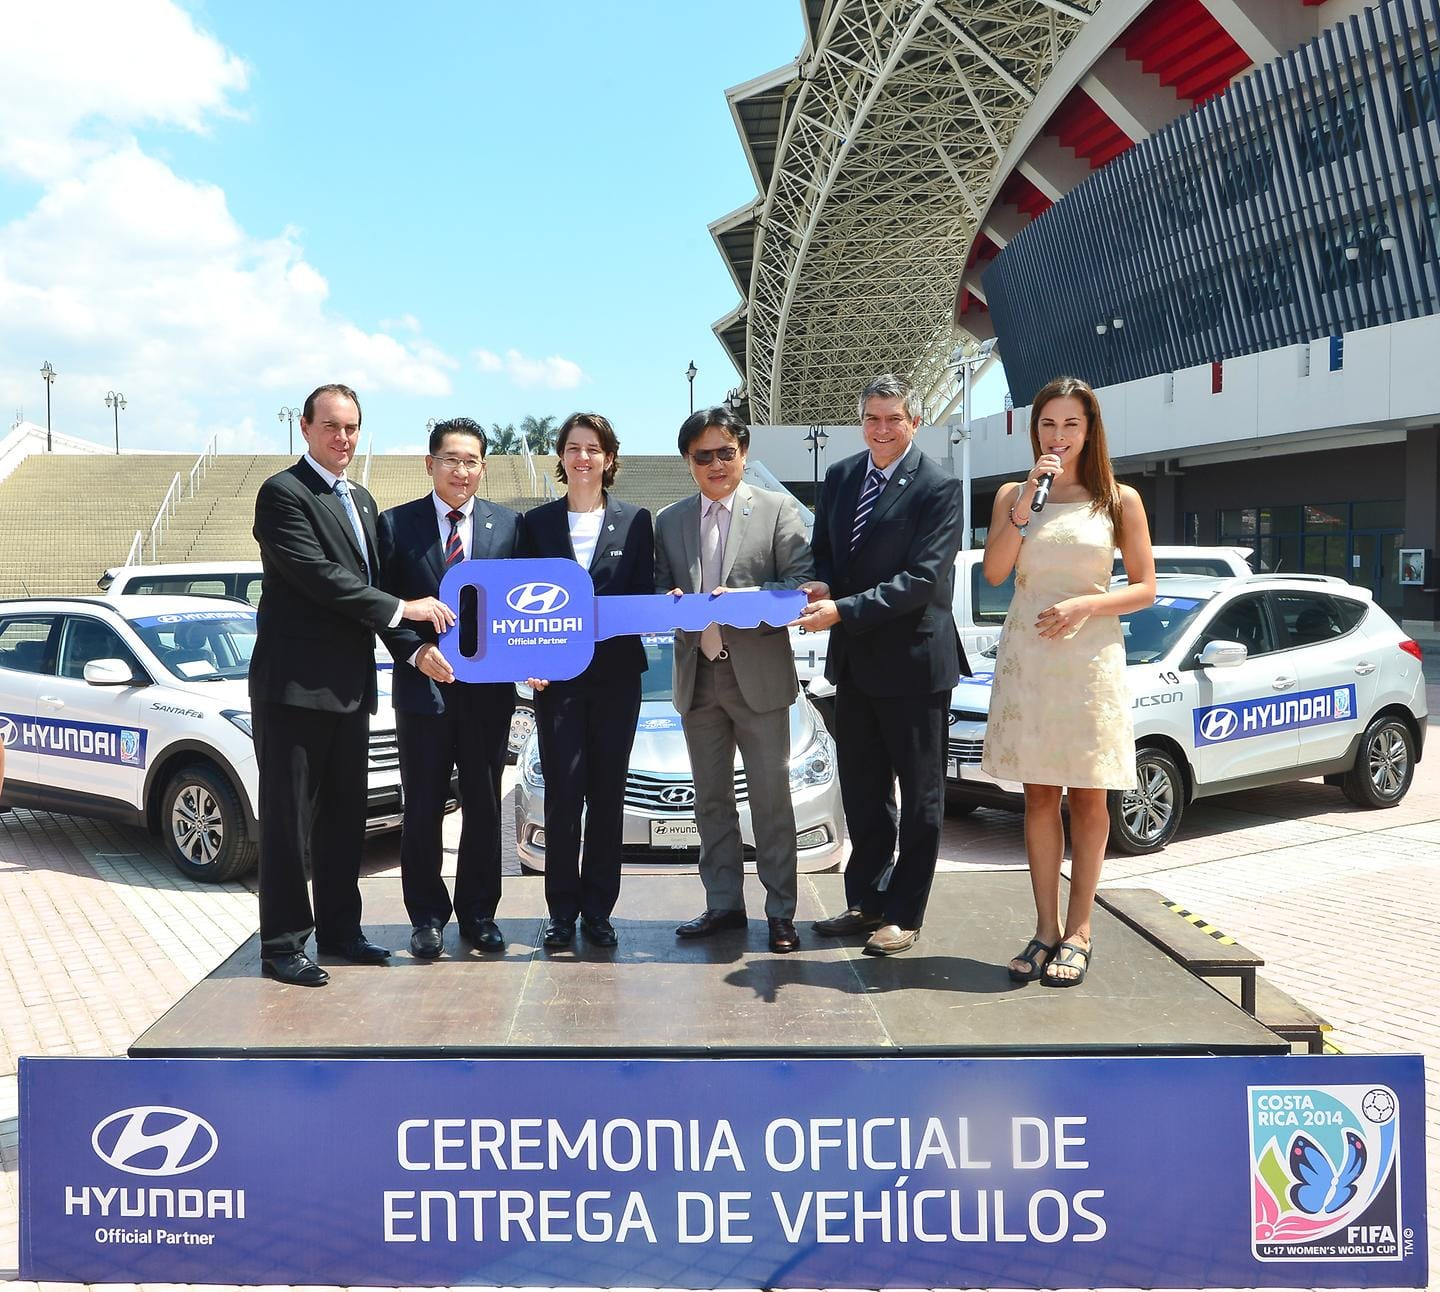 Hyundai Motor Gives Over 50 Cars to FIFA for Transportation FIFA U-17 Women's World Cup